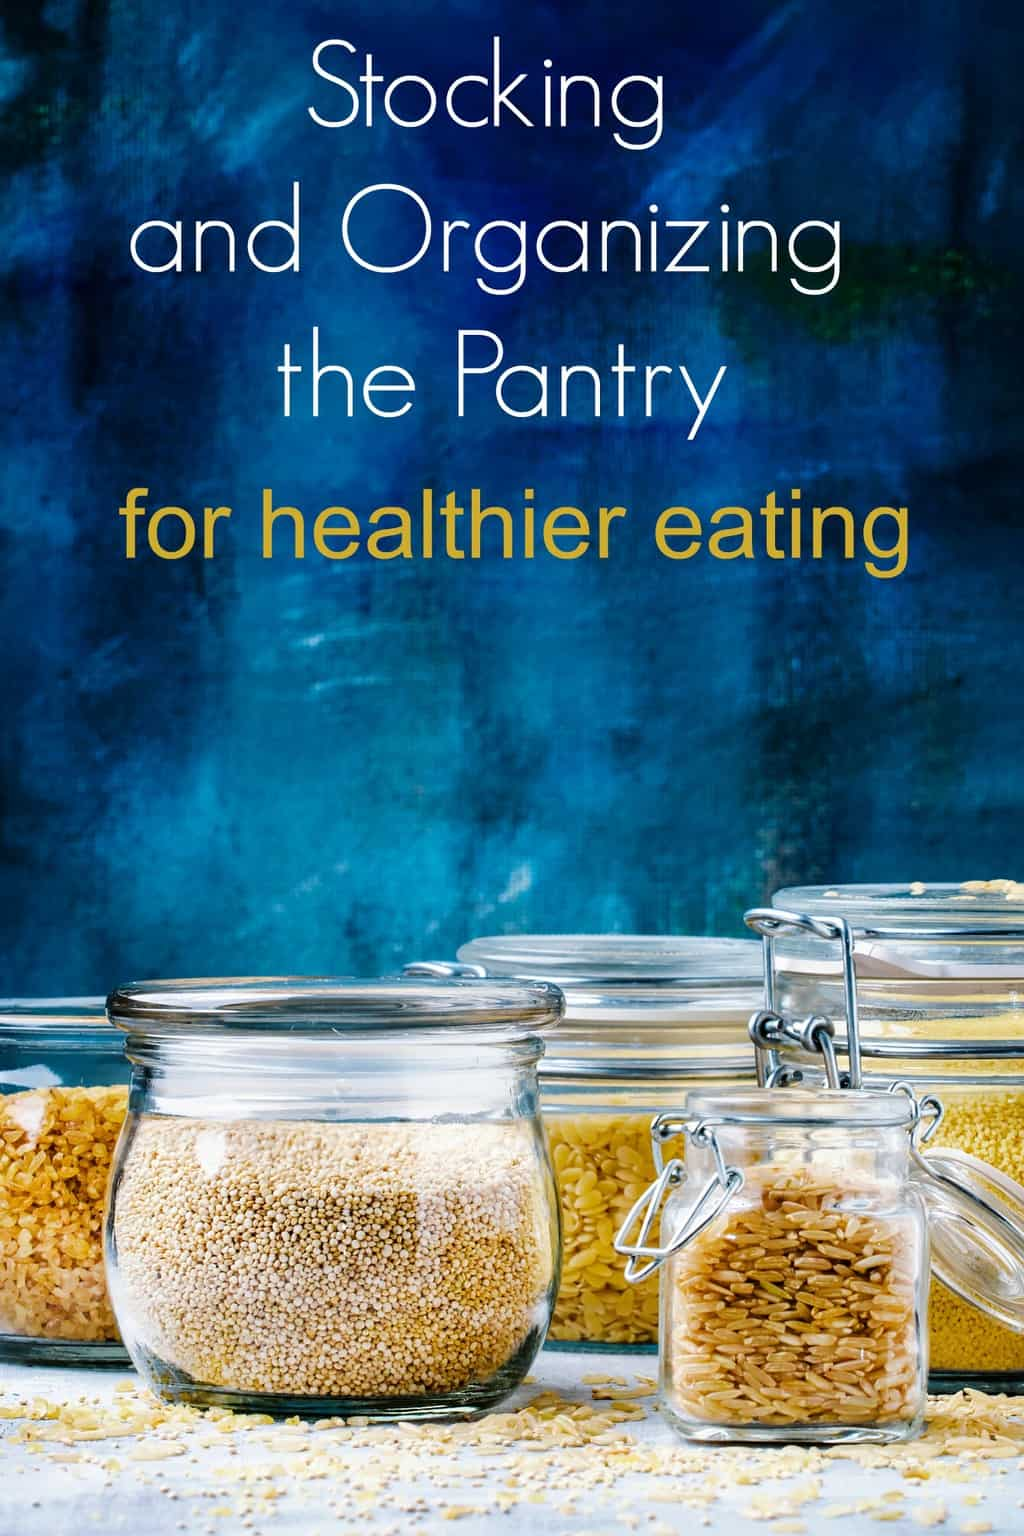 Want to start eating healthy?  Here are some tips for stocking and organizing the pantry for healthier eating.  Stock healthy foods for healthy meals!